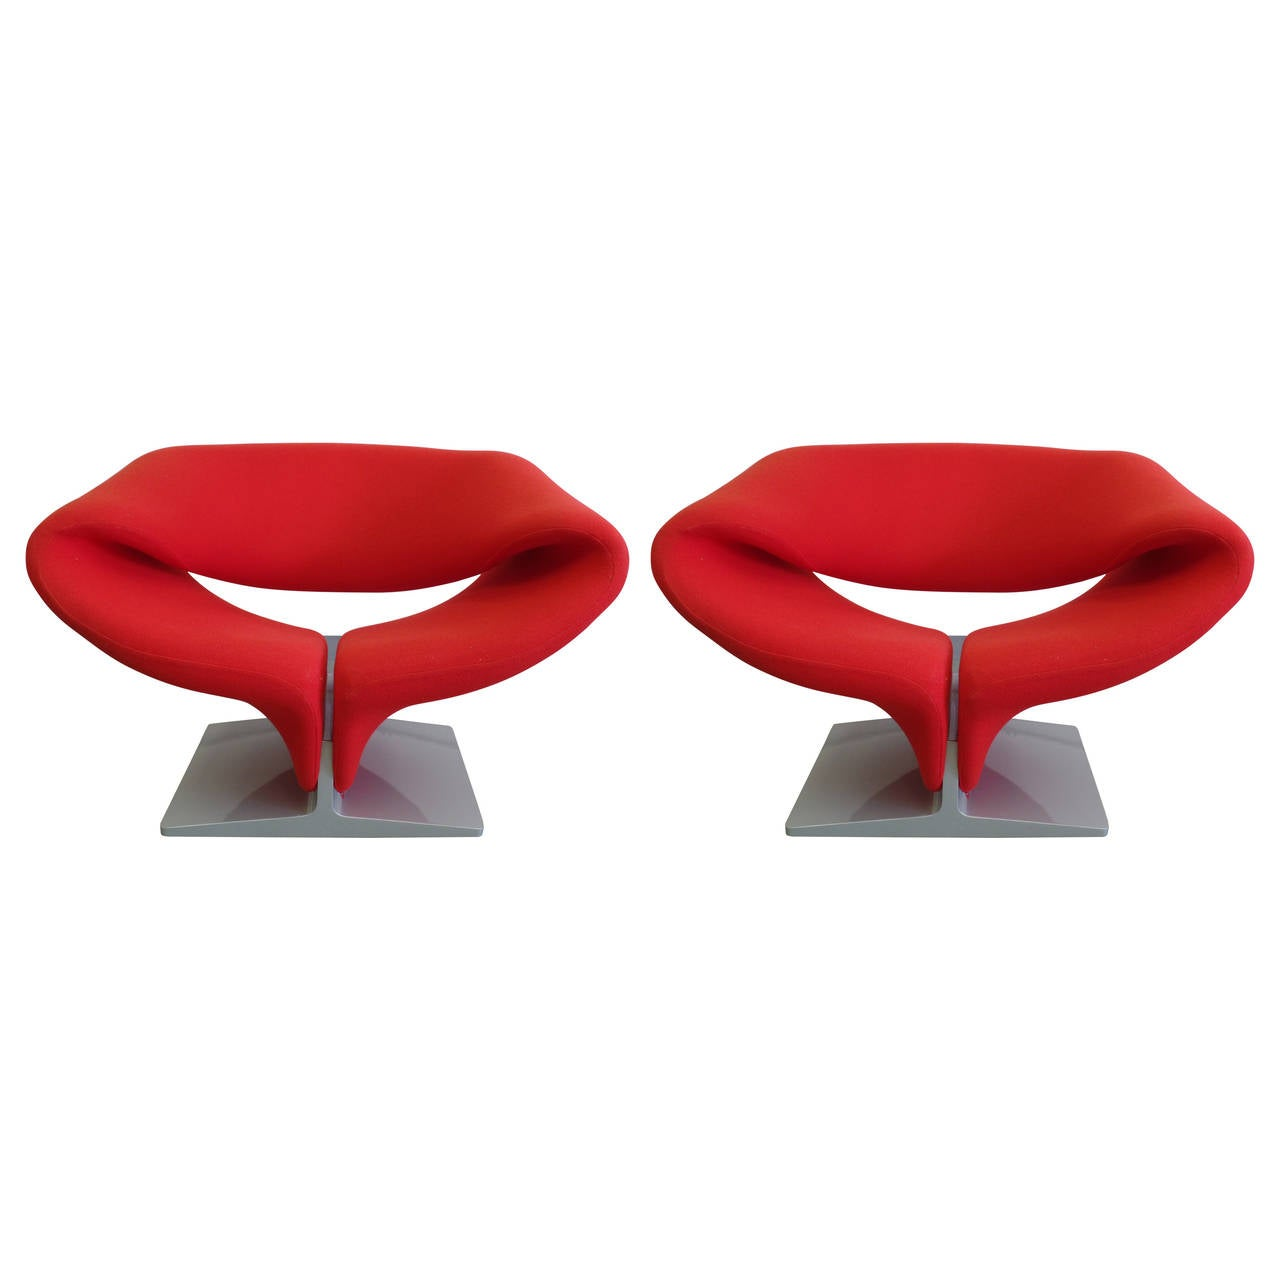 Pair Of French Ribbon Chairs By Pierre Paulin For Artifort At 1stdibs